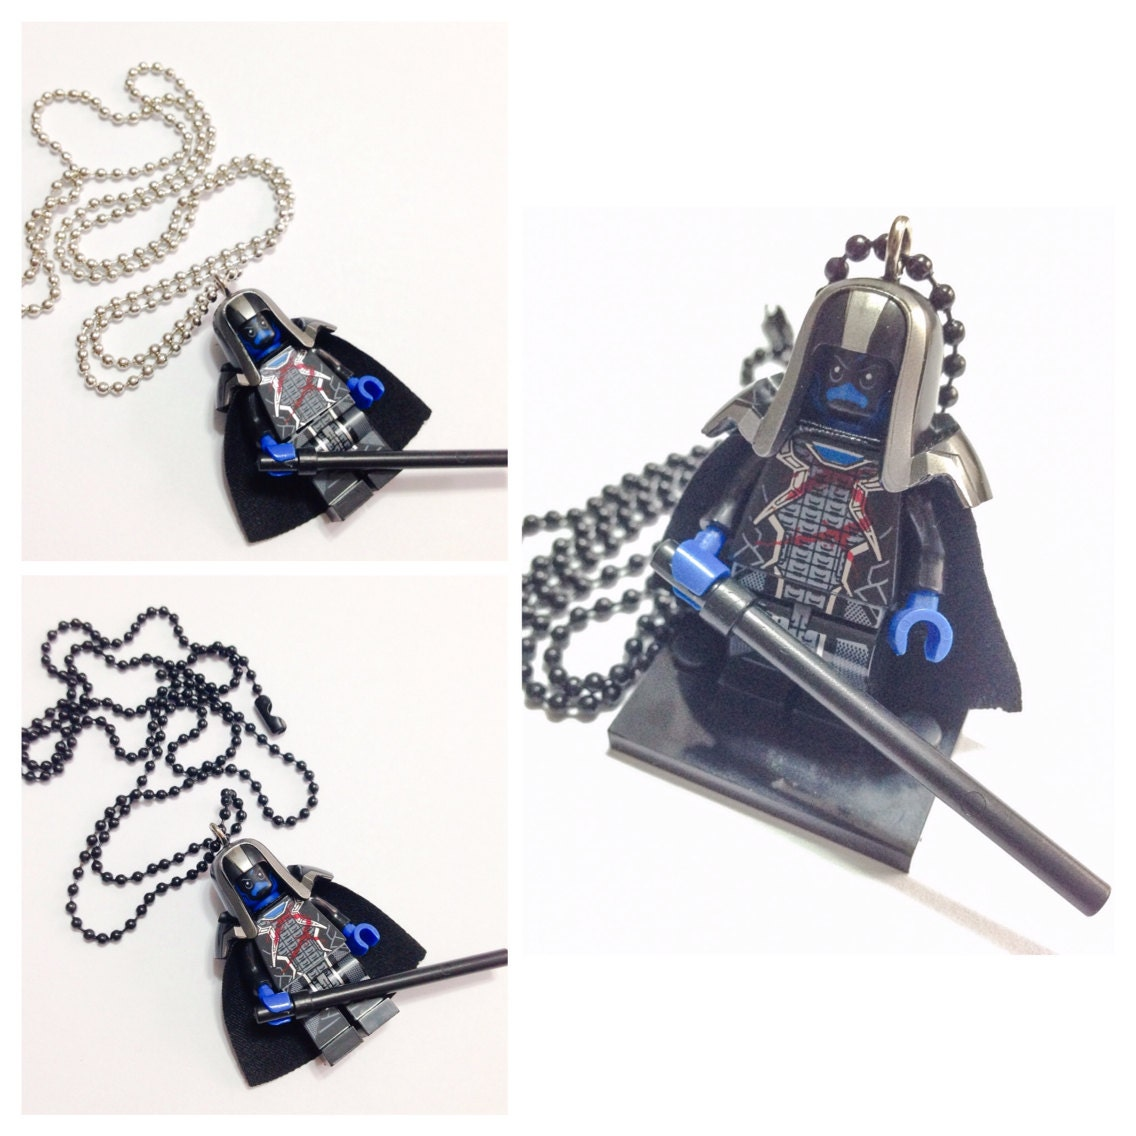 Lego® Guardians of the Galaxy RONAN Necklace Lego Ronan the